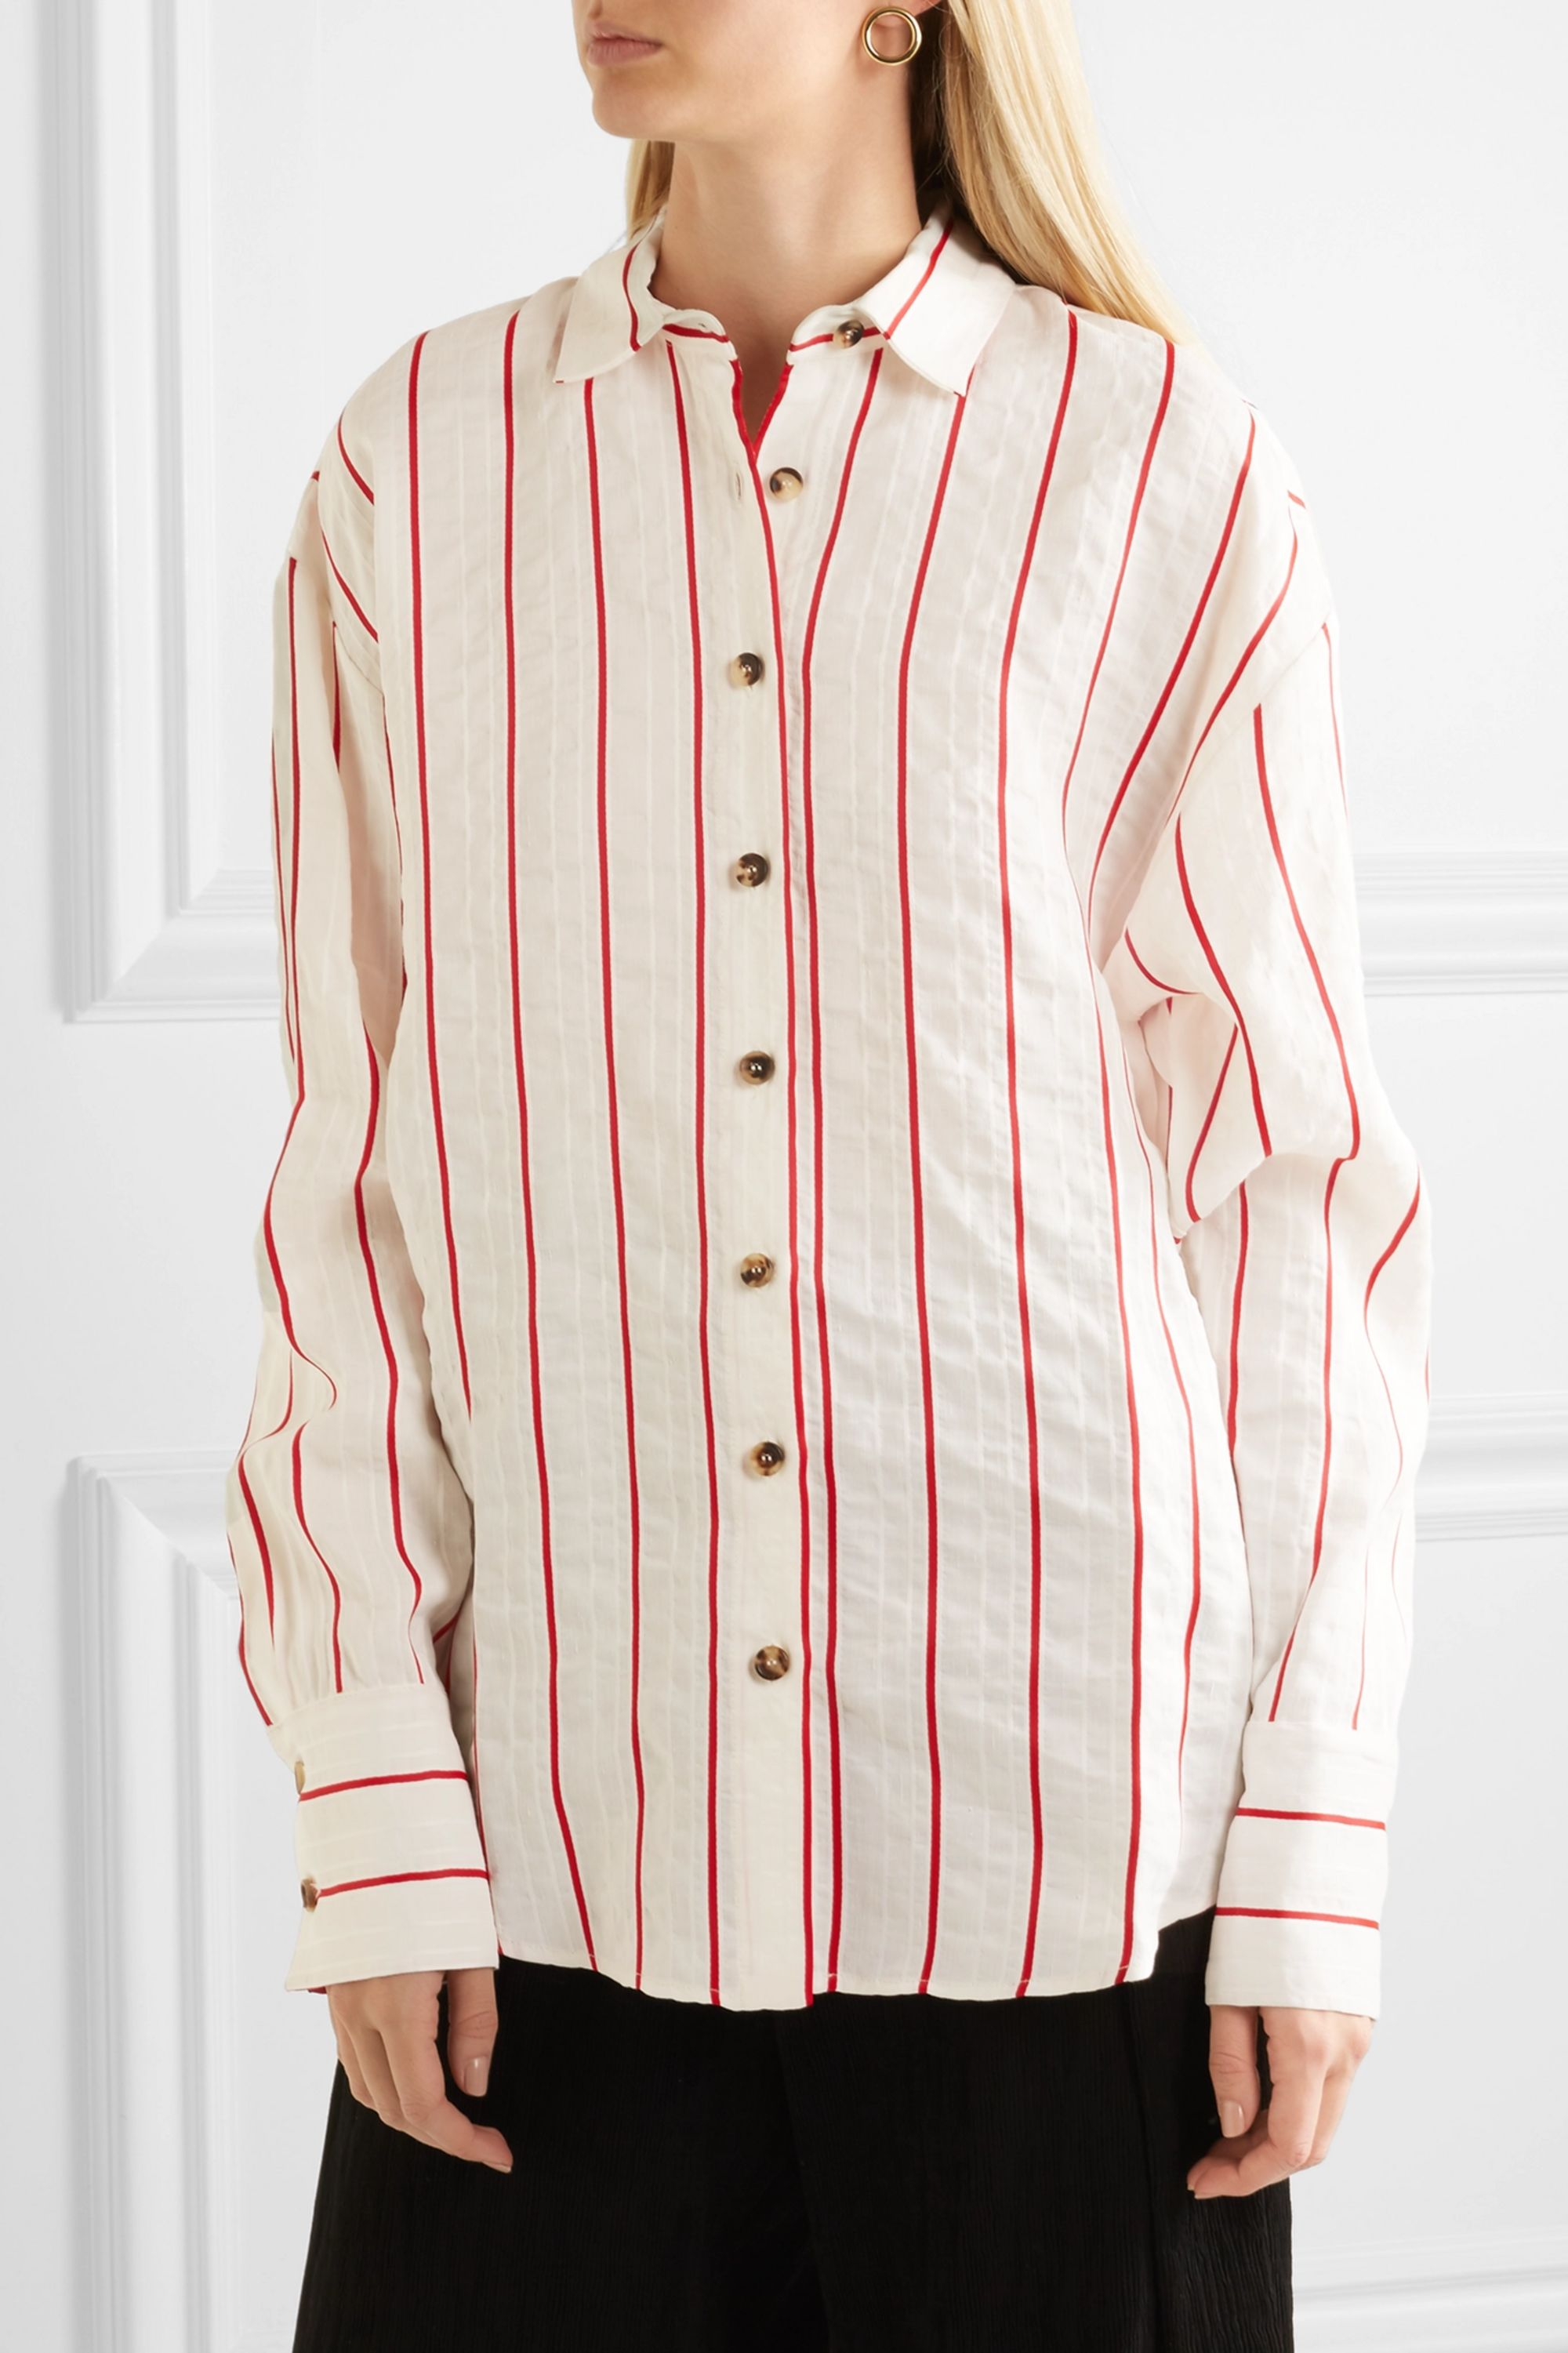 A.W.A.K.E. MODE Oversized striped jacquard shirt